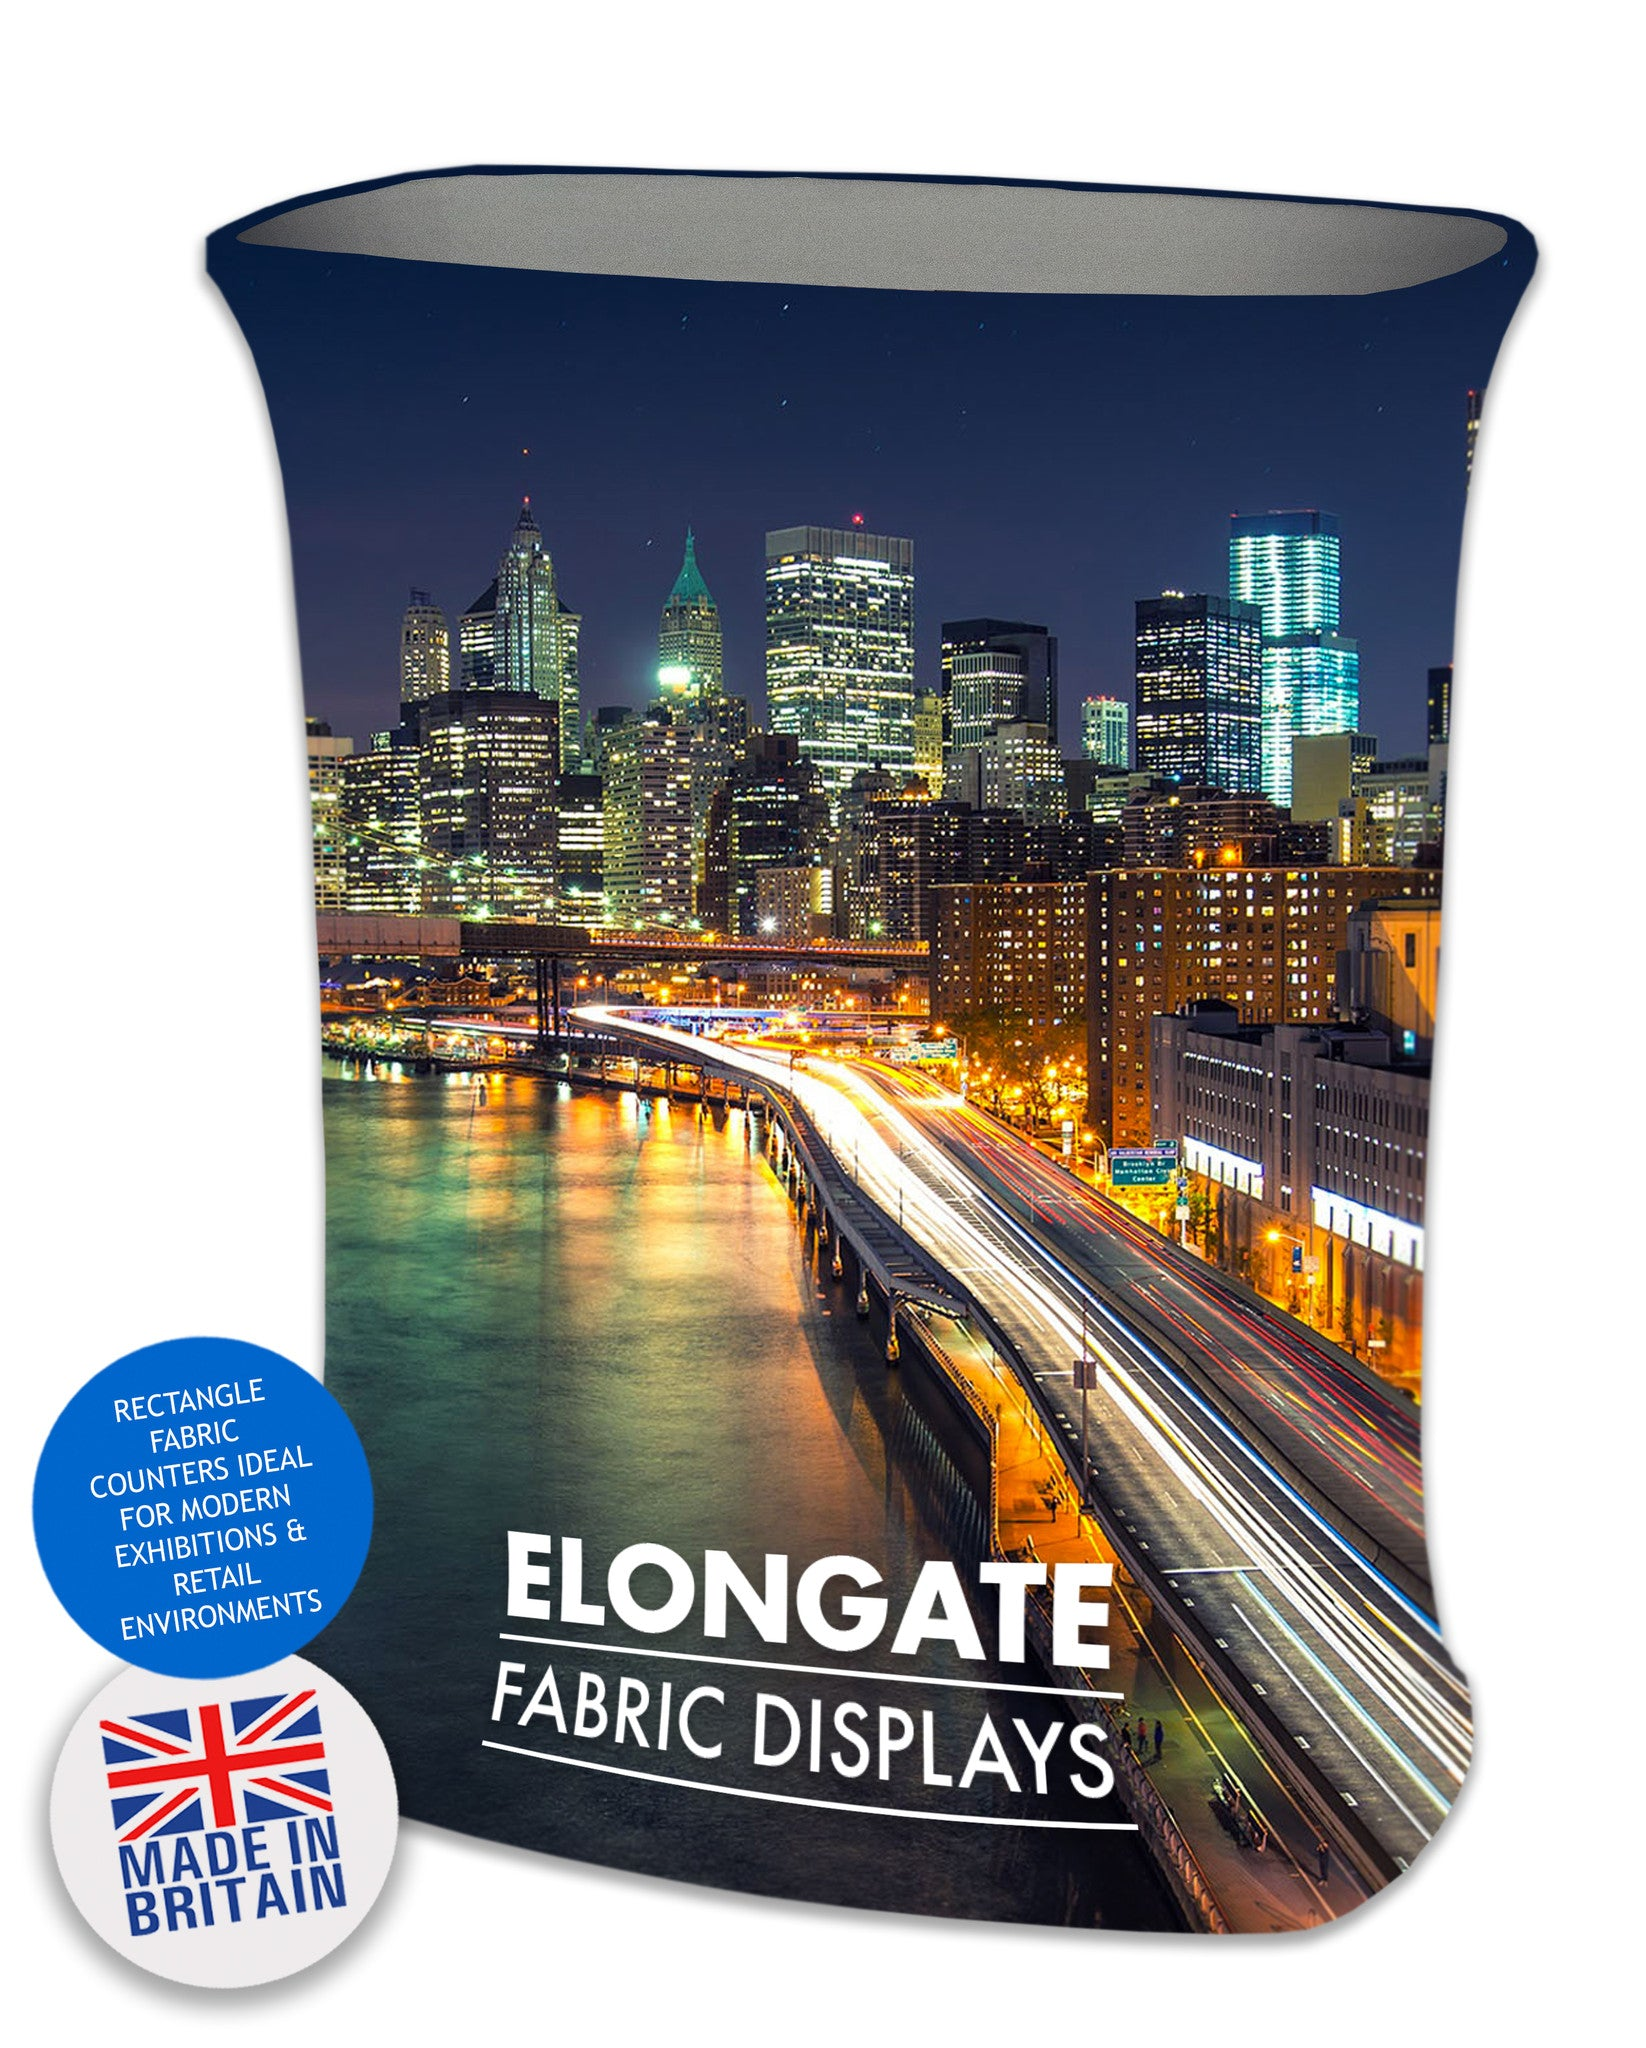 TEXSTYLE RECTANGLE ELONGATE FABRIC COUNTER